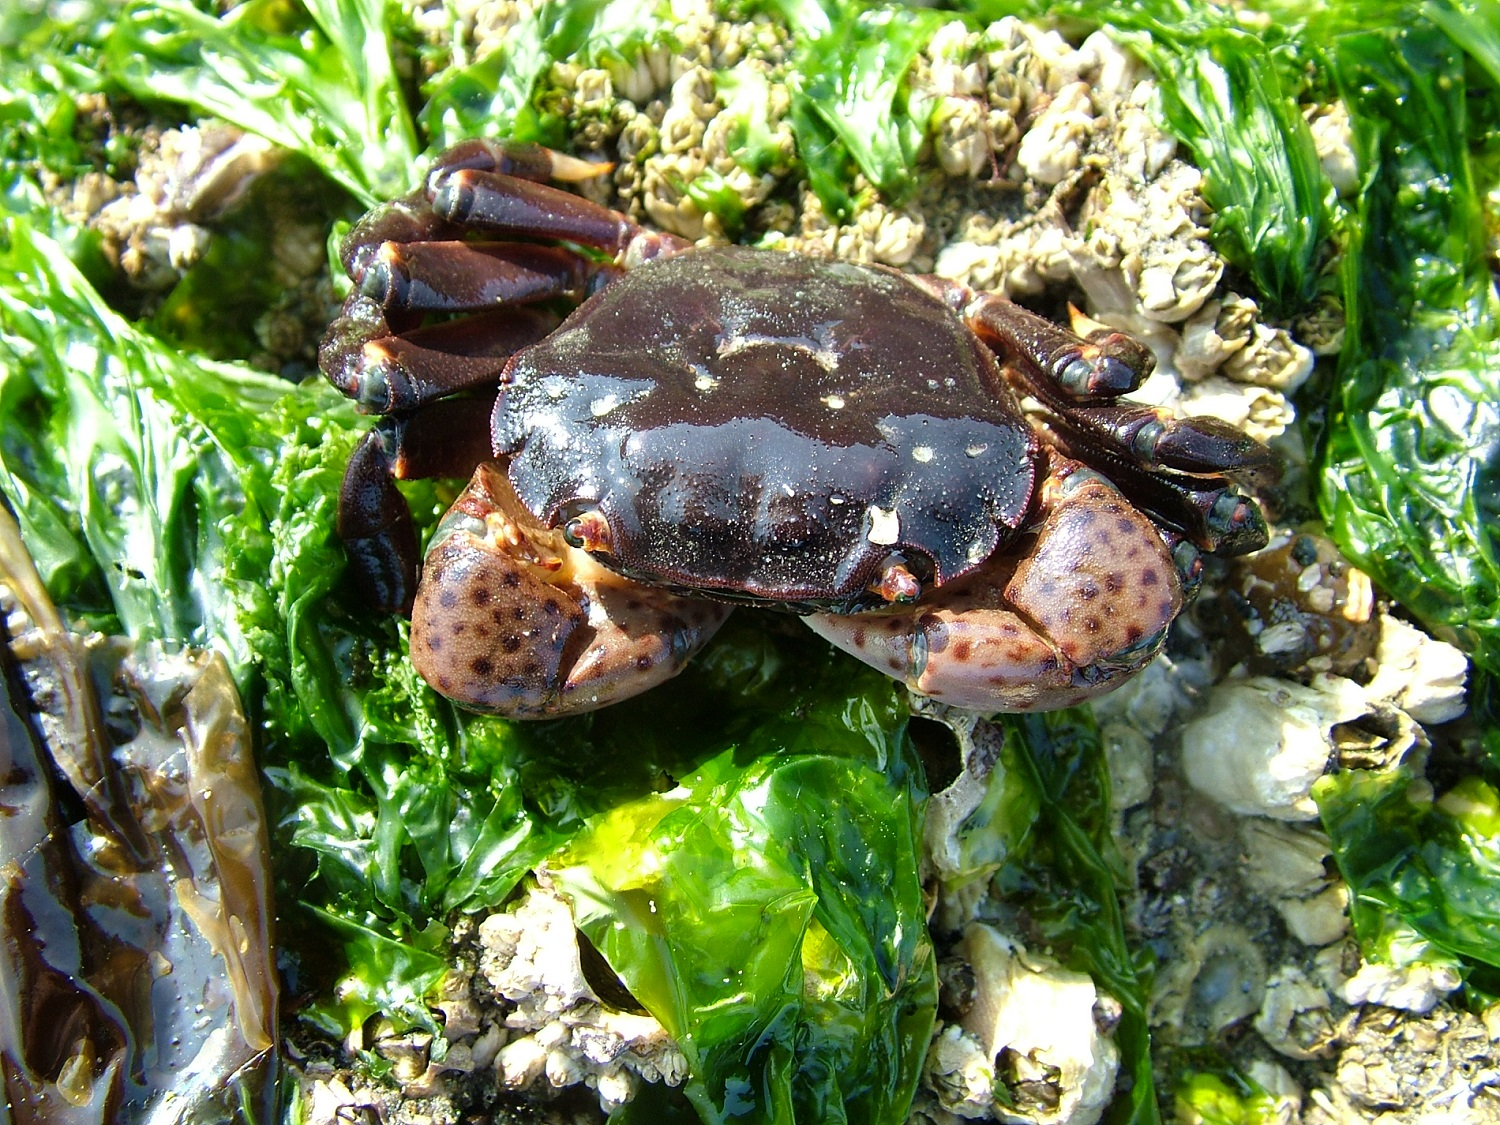 Purple shore crab in green kelp bed